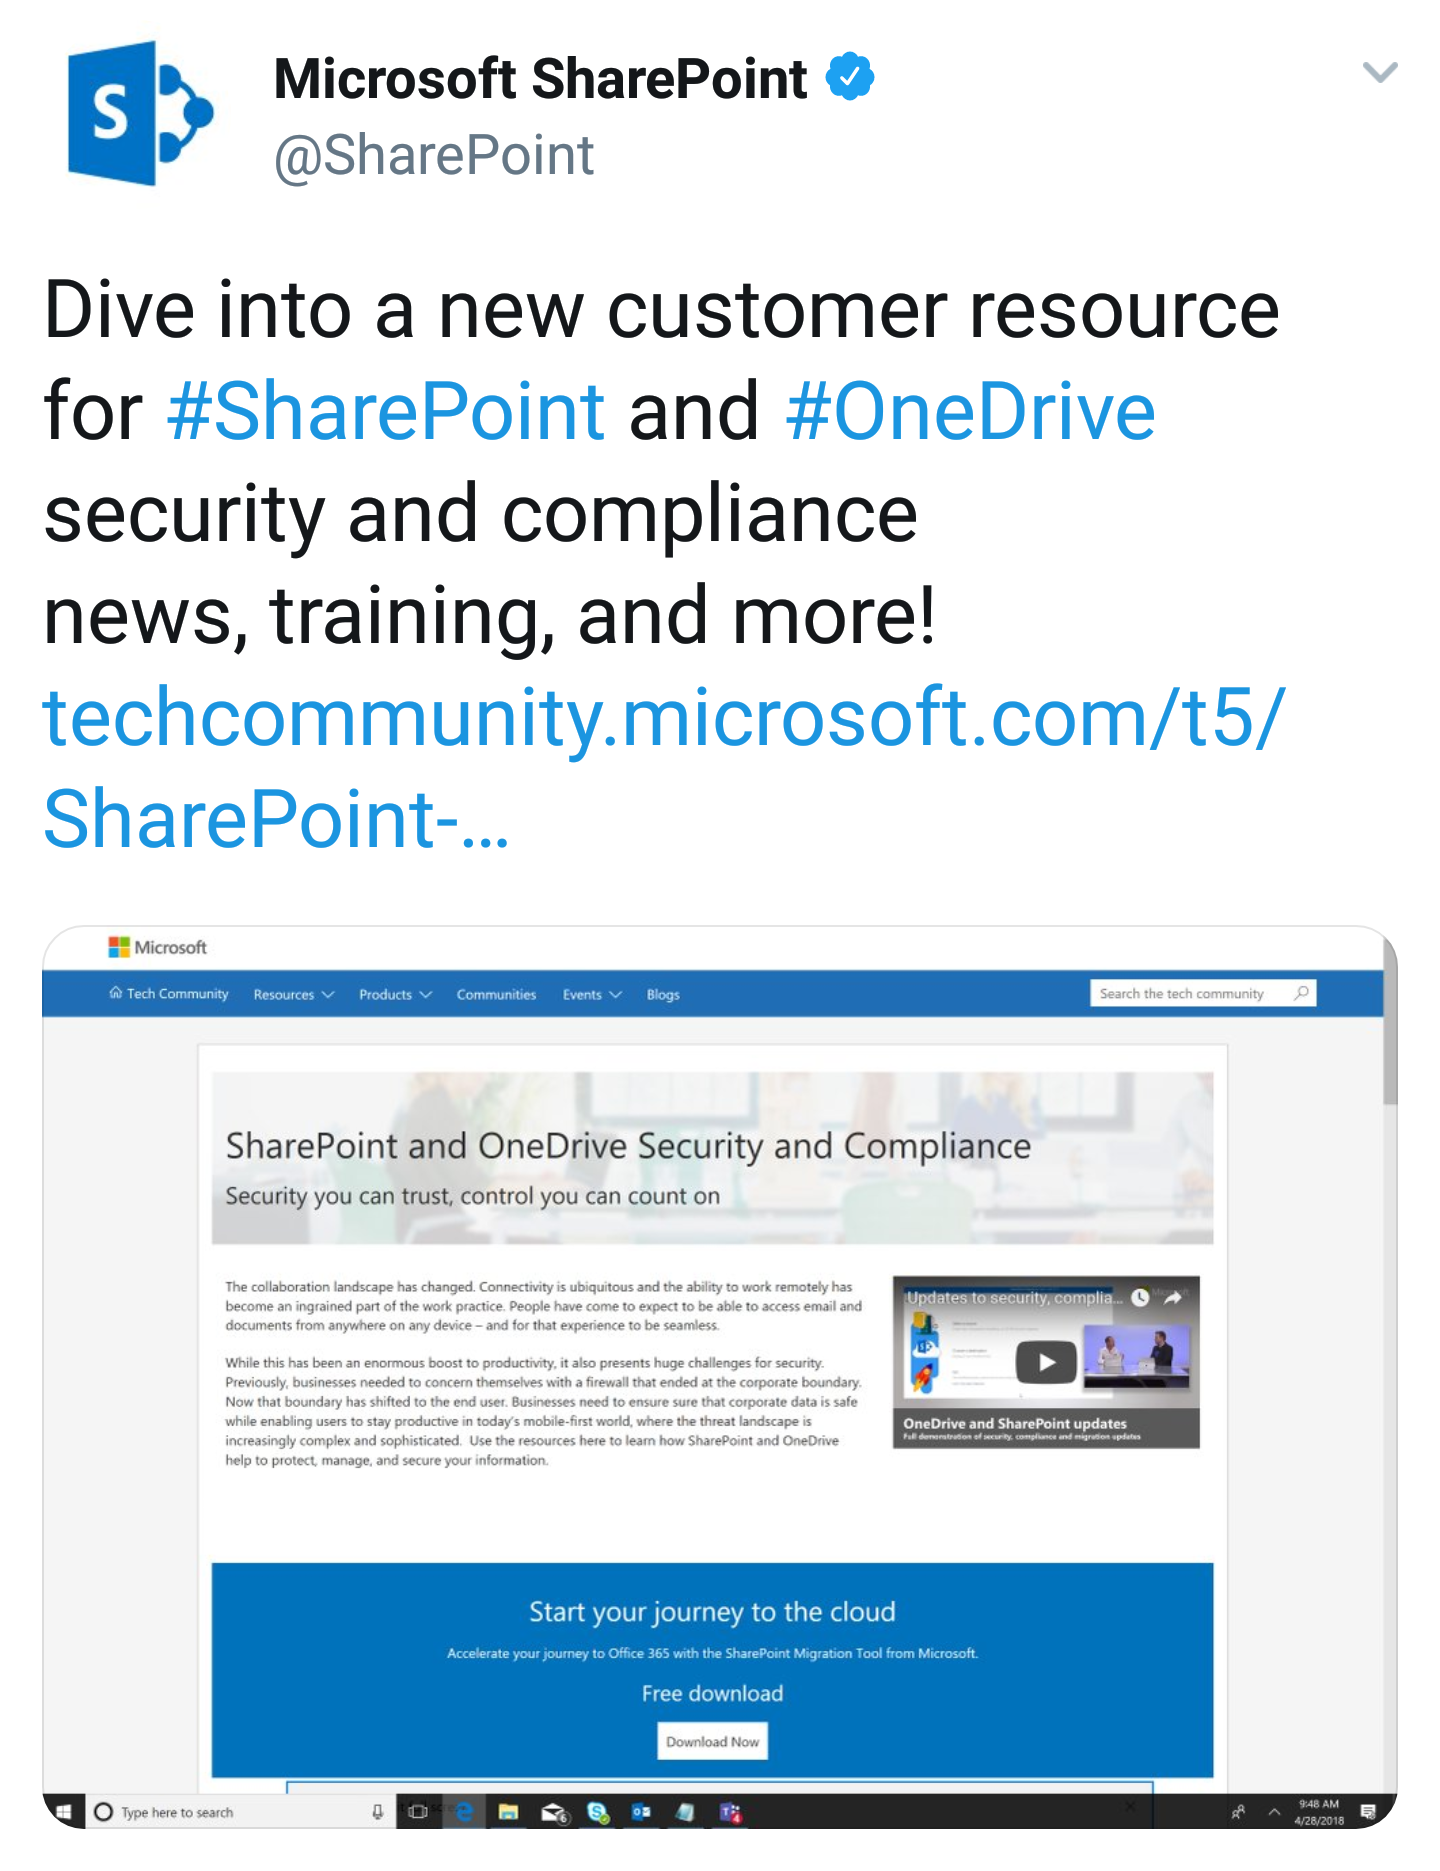 New Security and Compliance Resource for SharePoint and OneDrive Available - Keep your content secure people. (Microsoft)